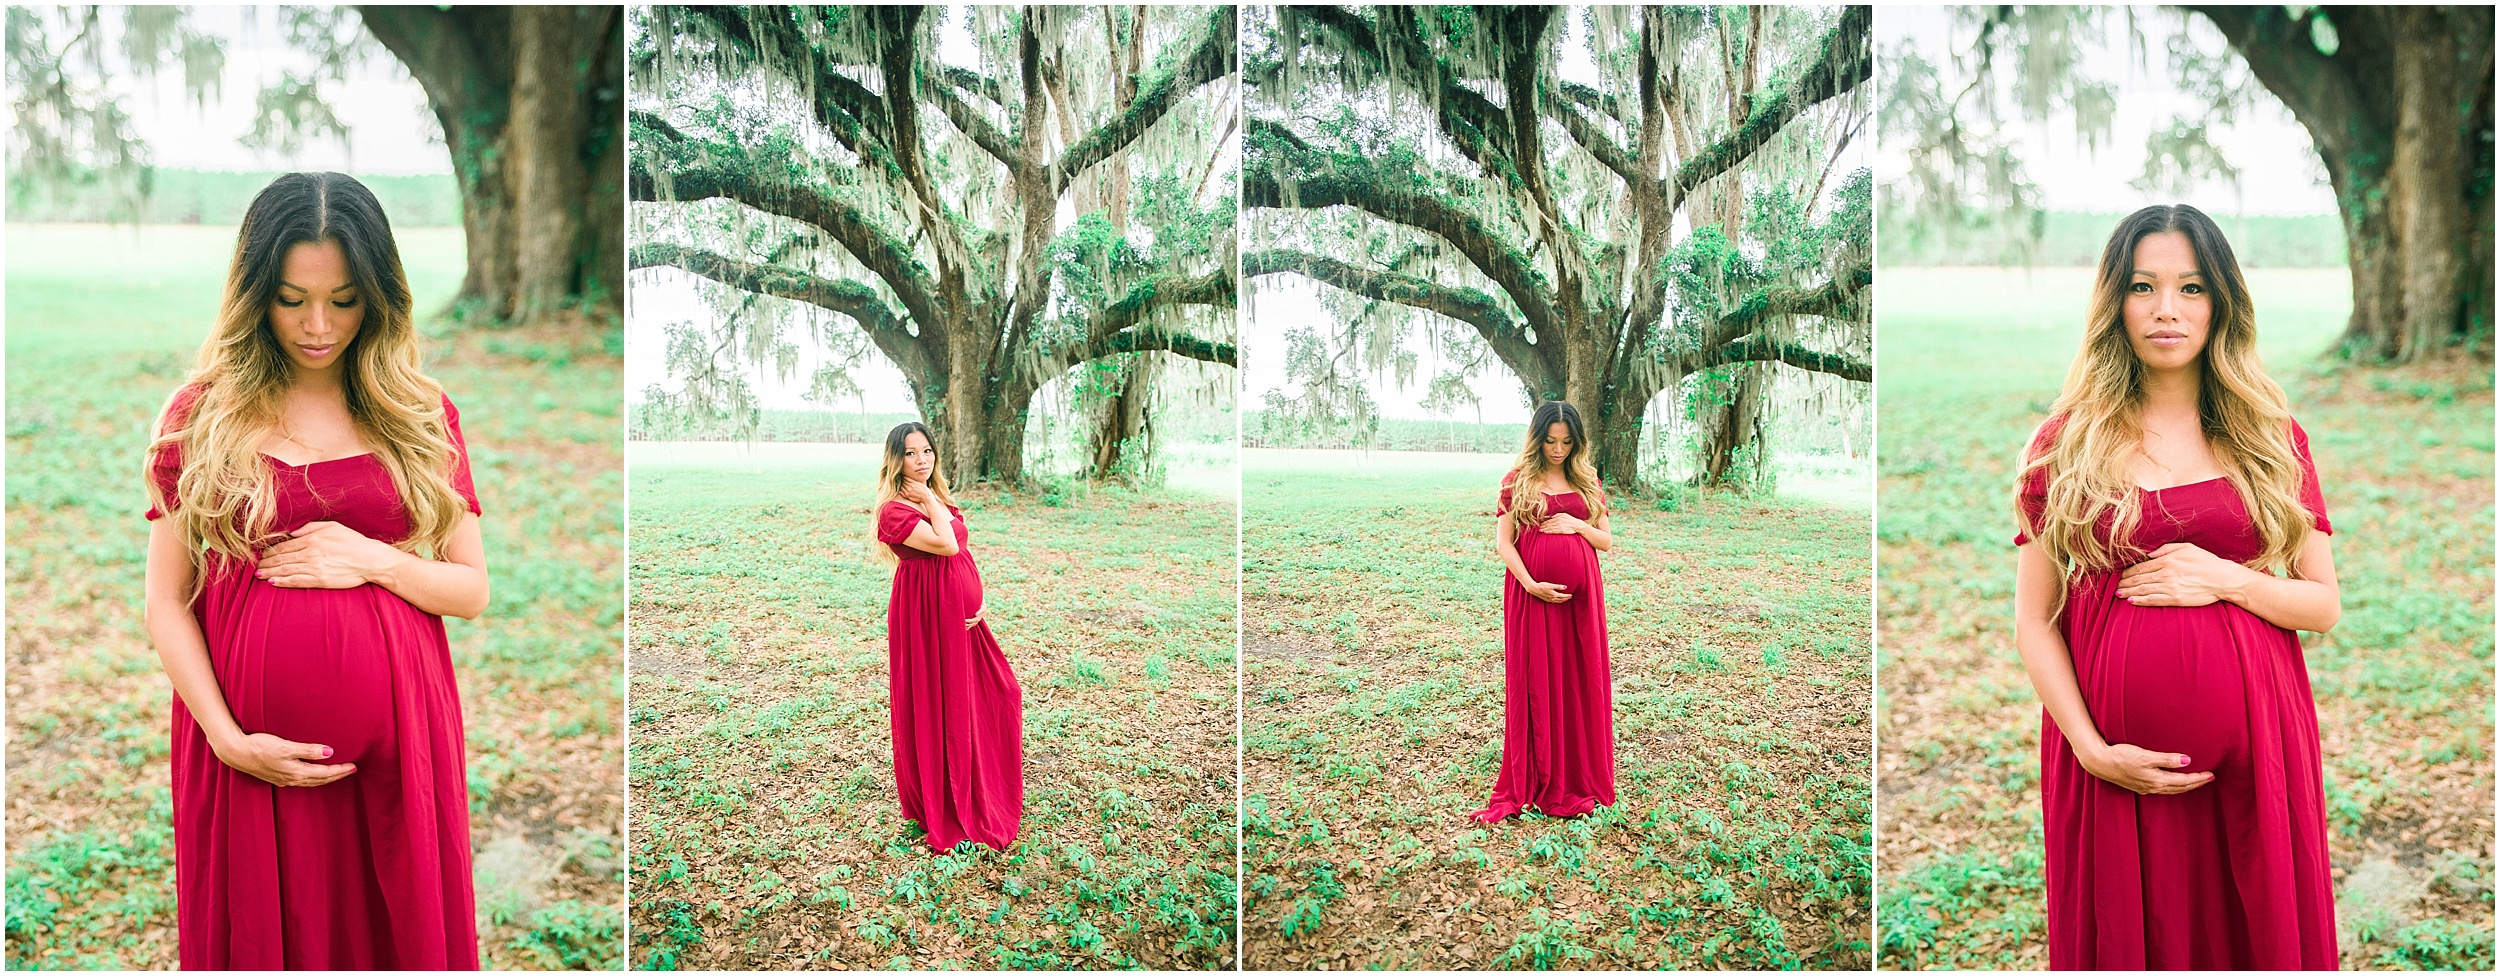 Linda & Thomas Maternity Session in Quitman, Georgia_0019.jpg